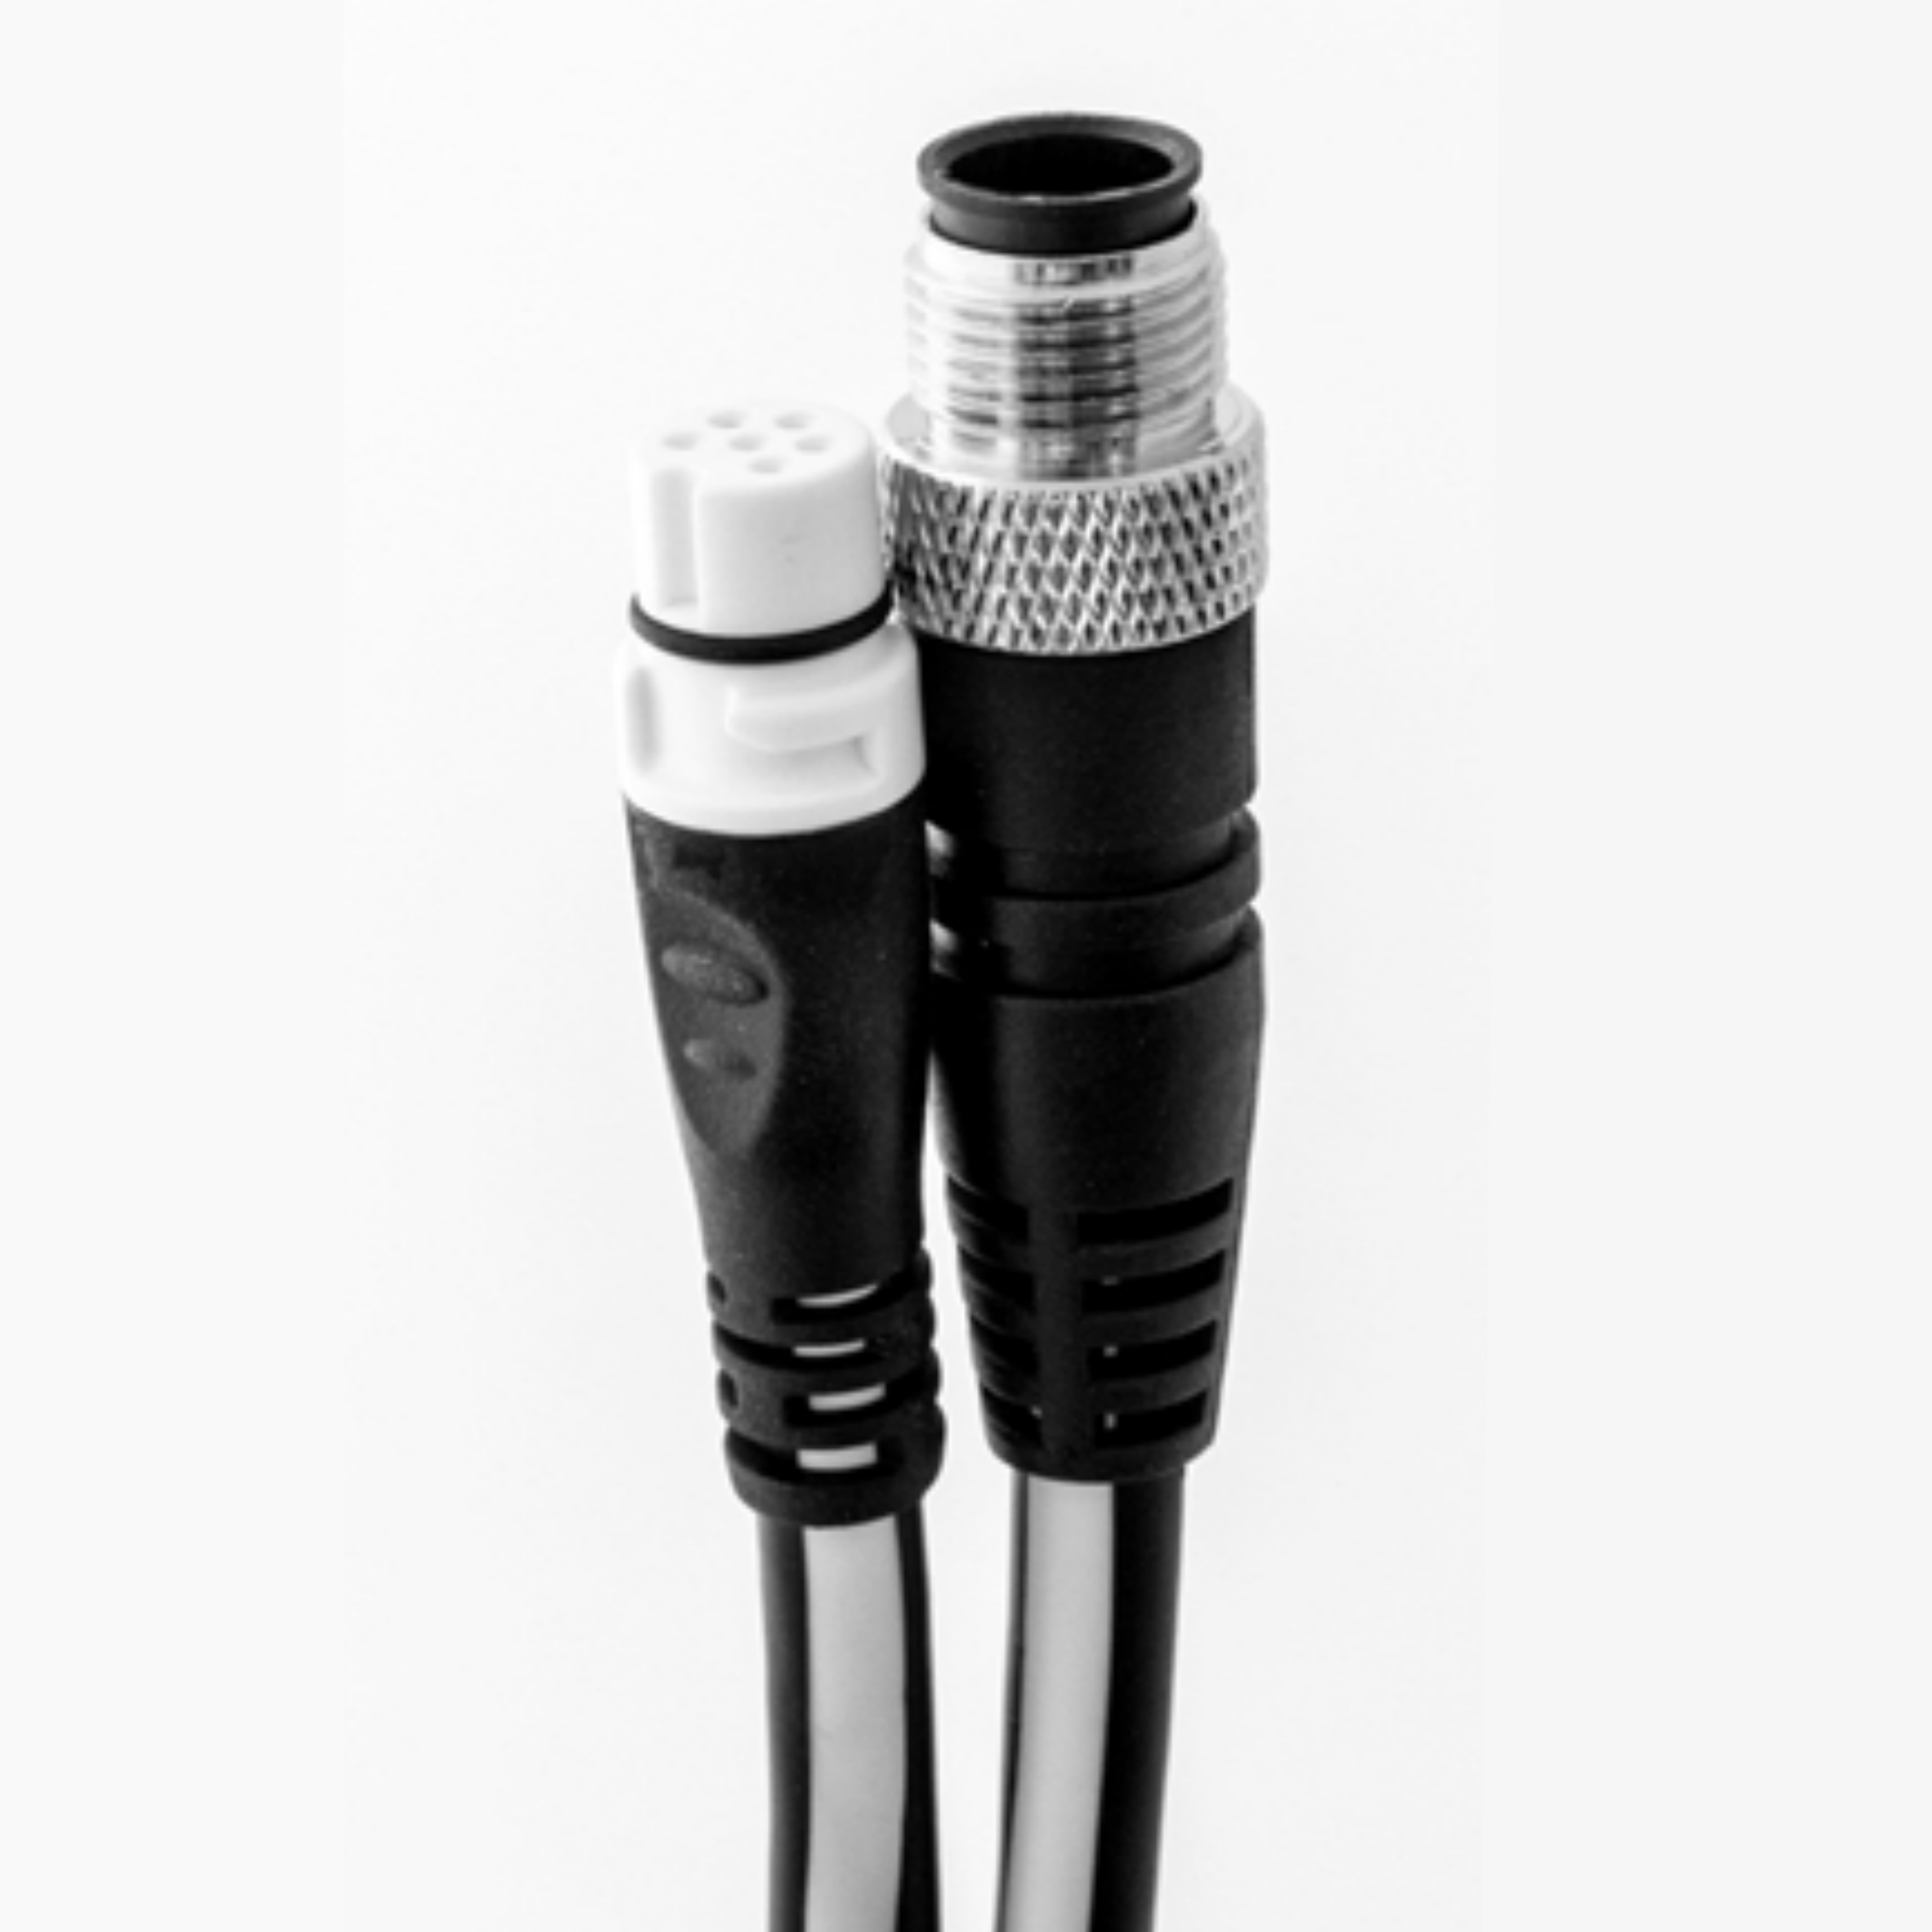 Raymarine A06046 Stng Devicenet Adaptor Cable 1 5m│spur